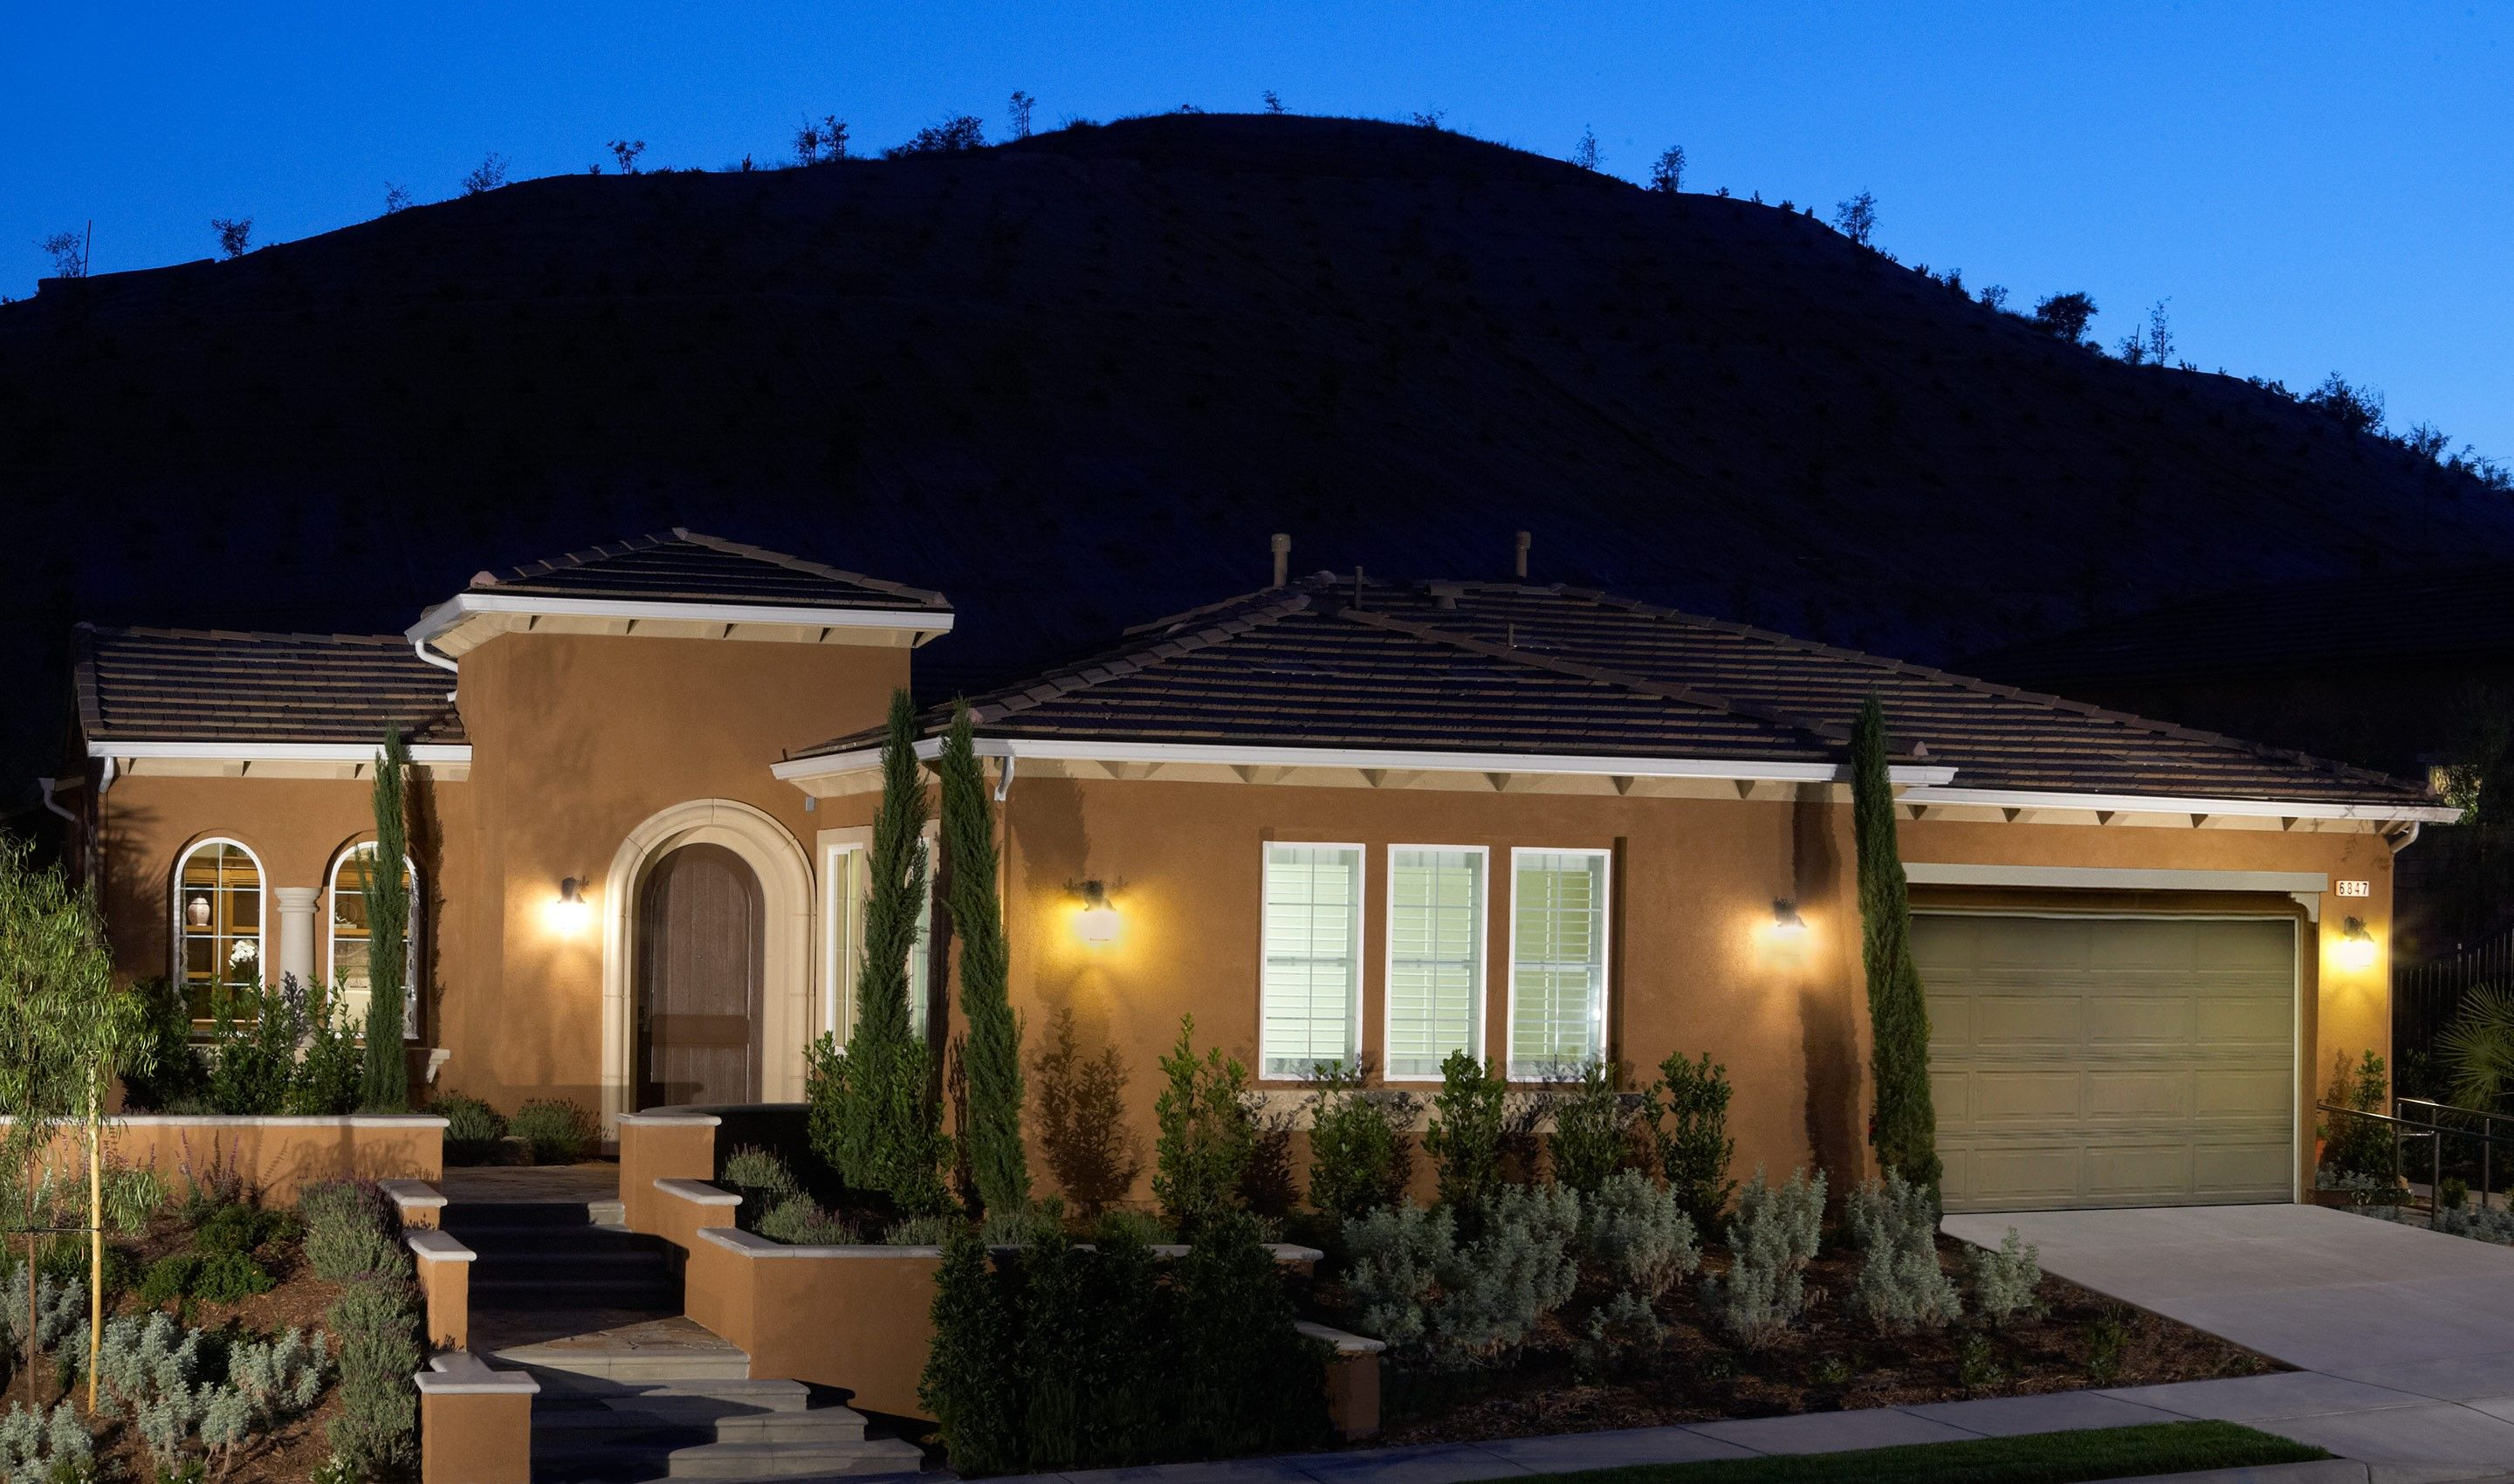 Single Family for Sale at The Executive Collection At Meridian Hills - Coral 6859 Ridgemark Drive Moorpark, California 93021 United States